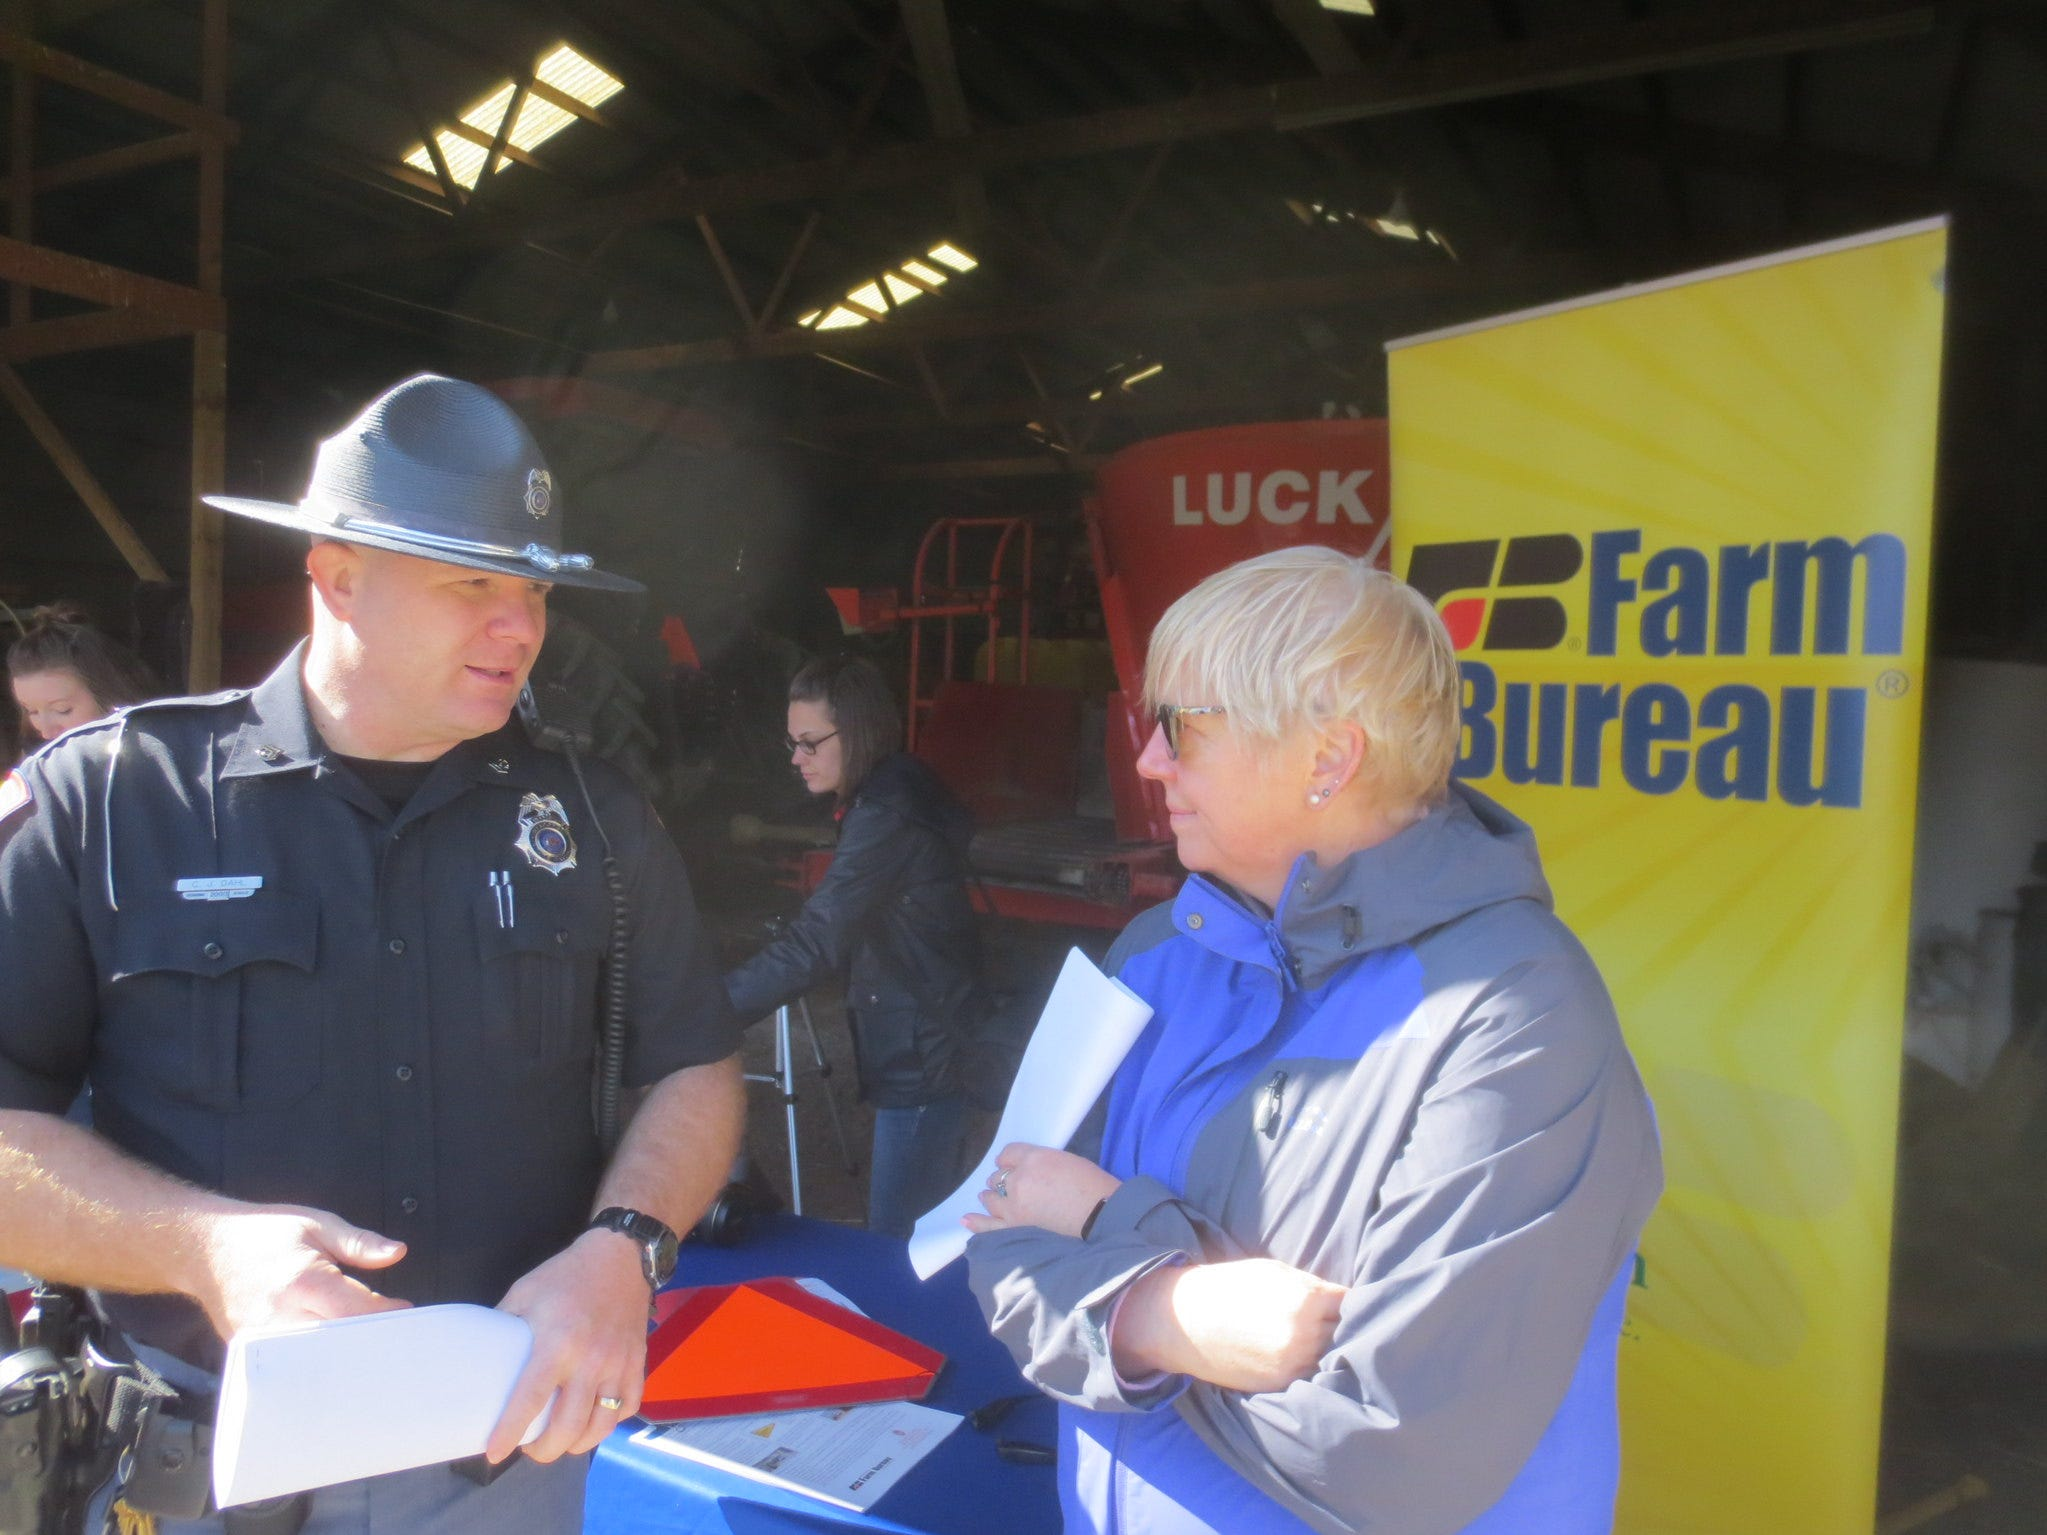 Safety Patrol officer CJ Dahl compares notes with Cheryl Skjolaas,  Agricultural Safety and Health Specialist for UW Extension, during the Rural Road Safety Media Day held April 26 at Larrand Dairy near DePere, Wis.